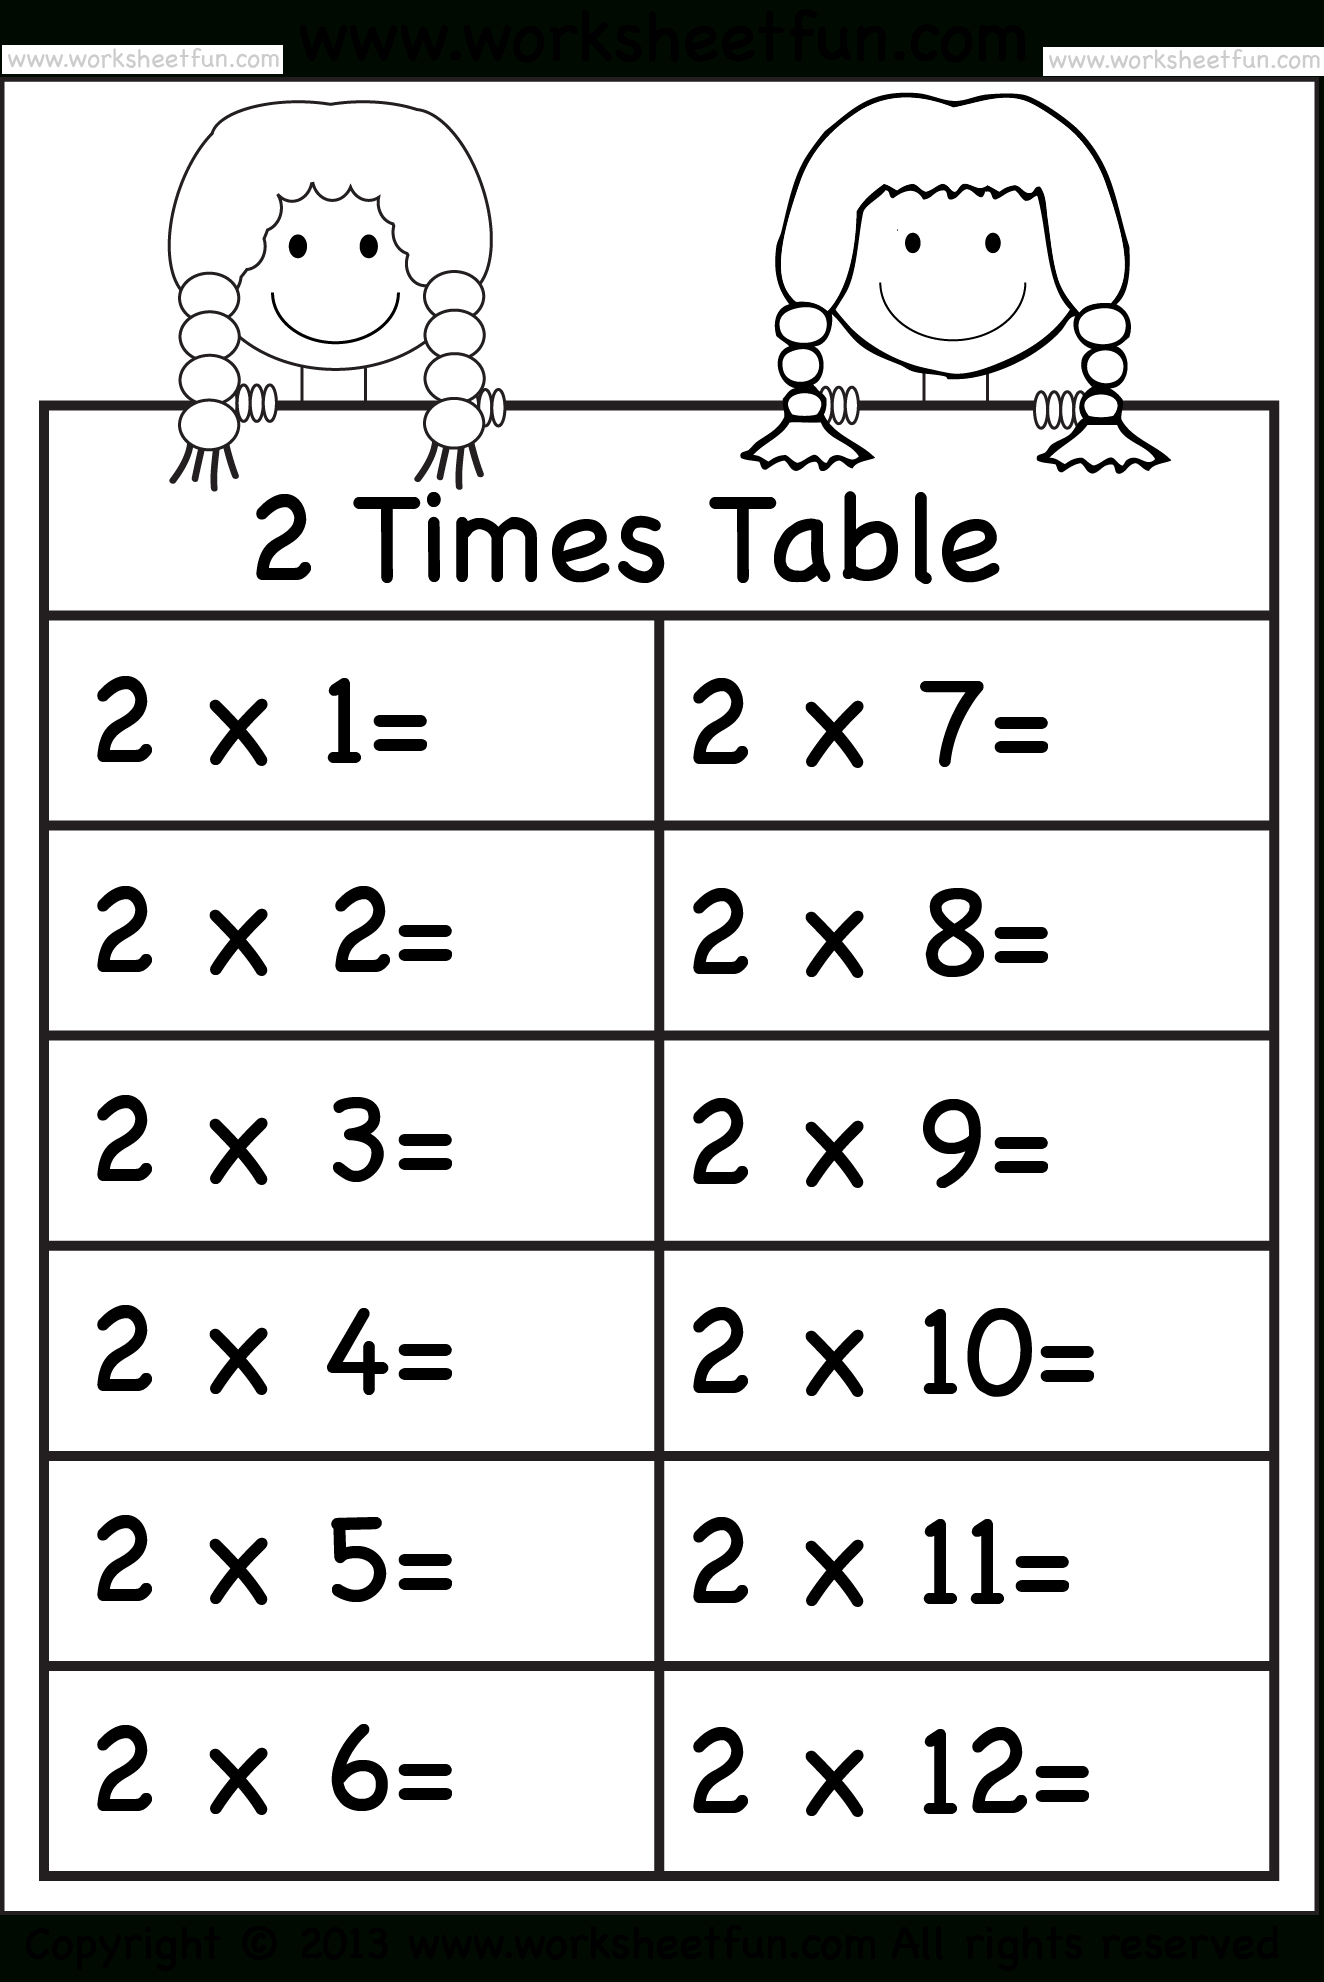 Times Tables Worksheets – 2, 3, 4, 5, 6, 7, 8, 9, 10, 11 And within Printable Multiplication Table 3